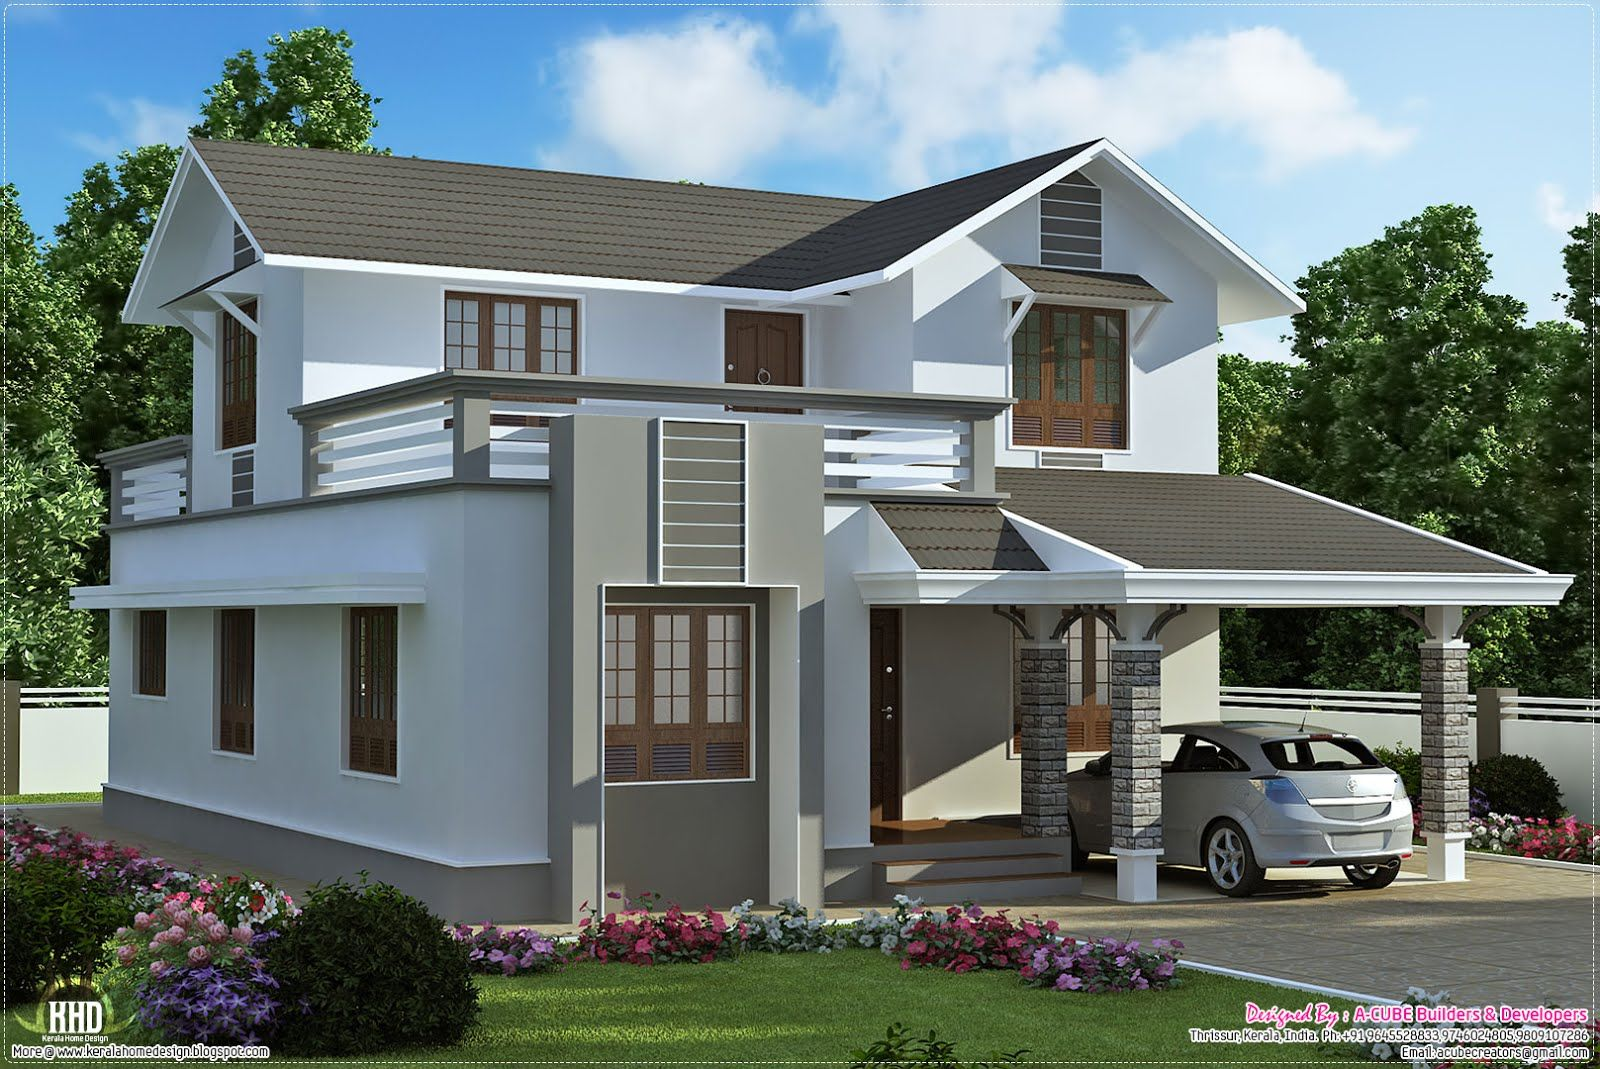 Average Home Is 300 Sq Ft Bigger Since 2009 Small Modern House Plans Best Modern House Design Small House Design Philippines